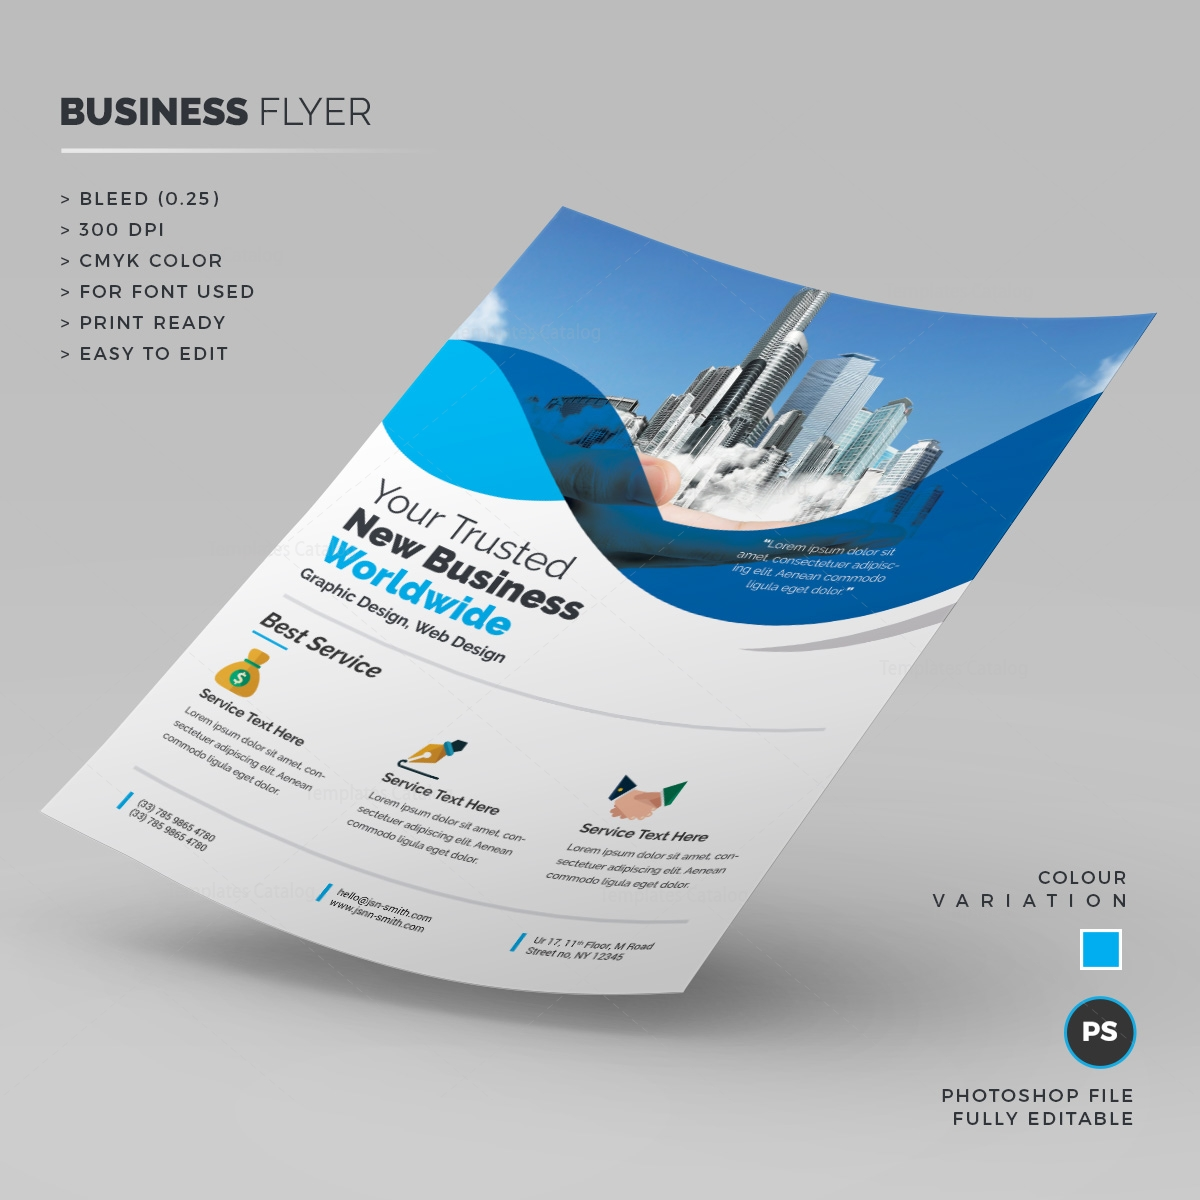 Photoshop corporate business flyer 000227 template catalog for Photoshop brochure templates